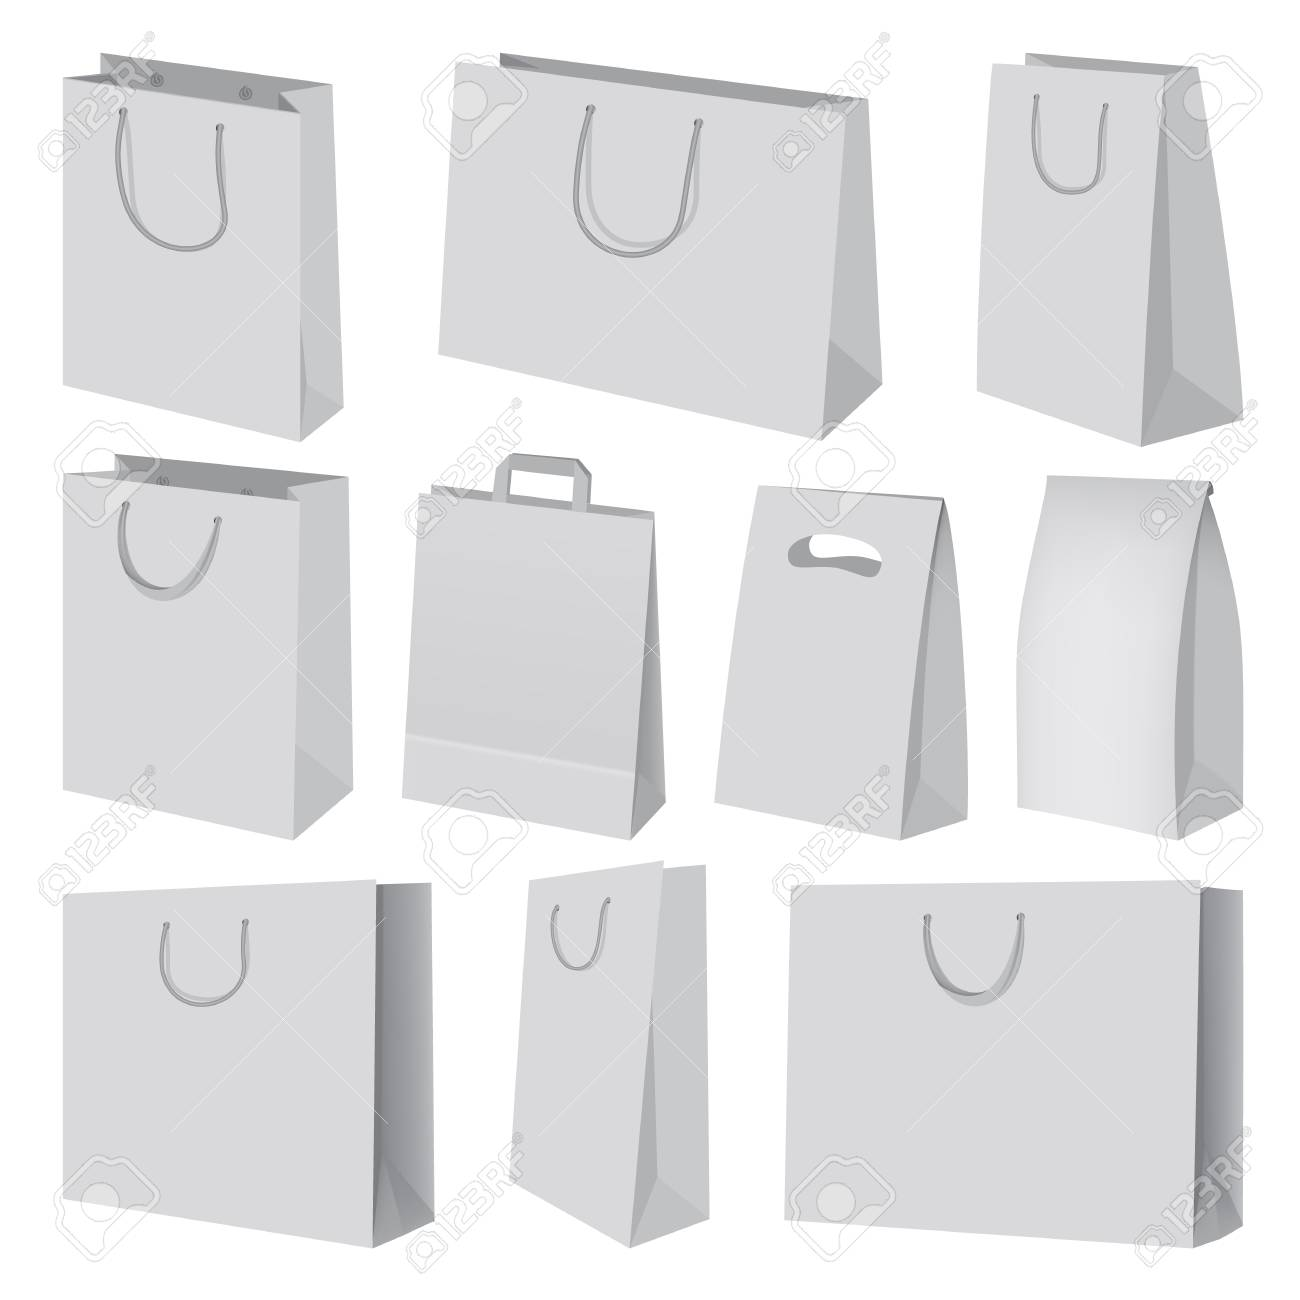 If you're working on branding for some company, shopping bag could be a hassle. Paper Bag Mockup Set Realistic Style Royalty Free Cliparts Vectors And Stock Illustration Image 78408445